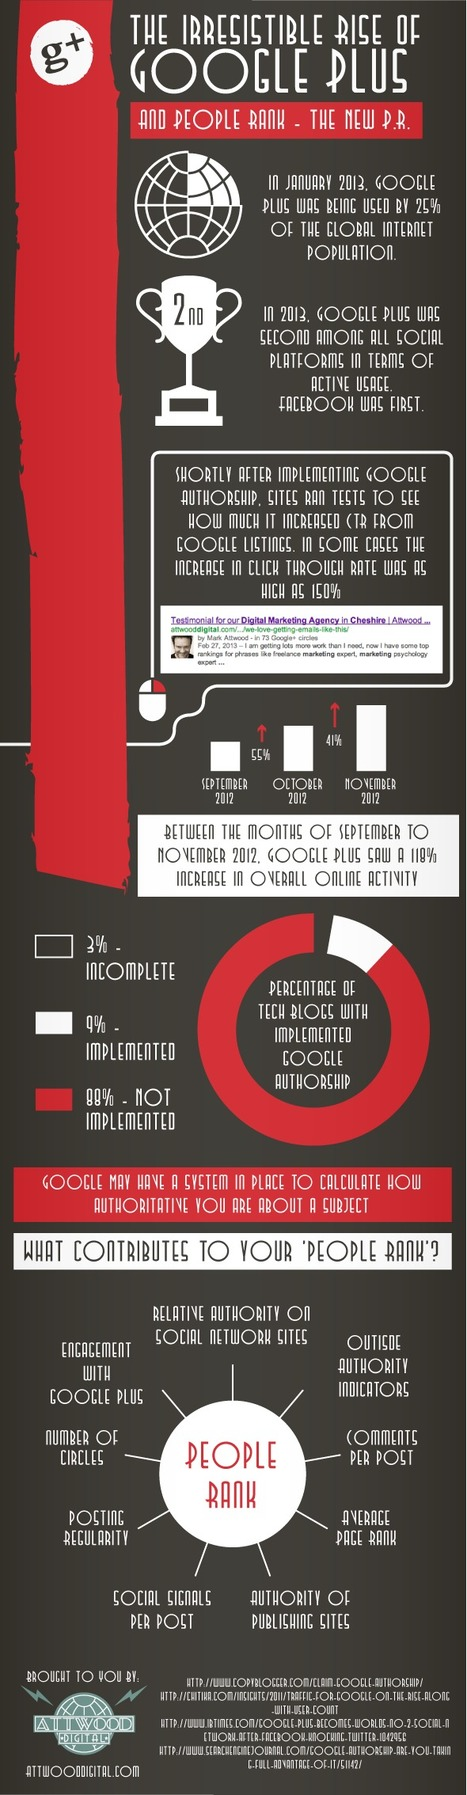 The Irresistible Rise Of Google Plus (Infographic) | Digital Marketing Fever | Scoop.it